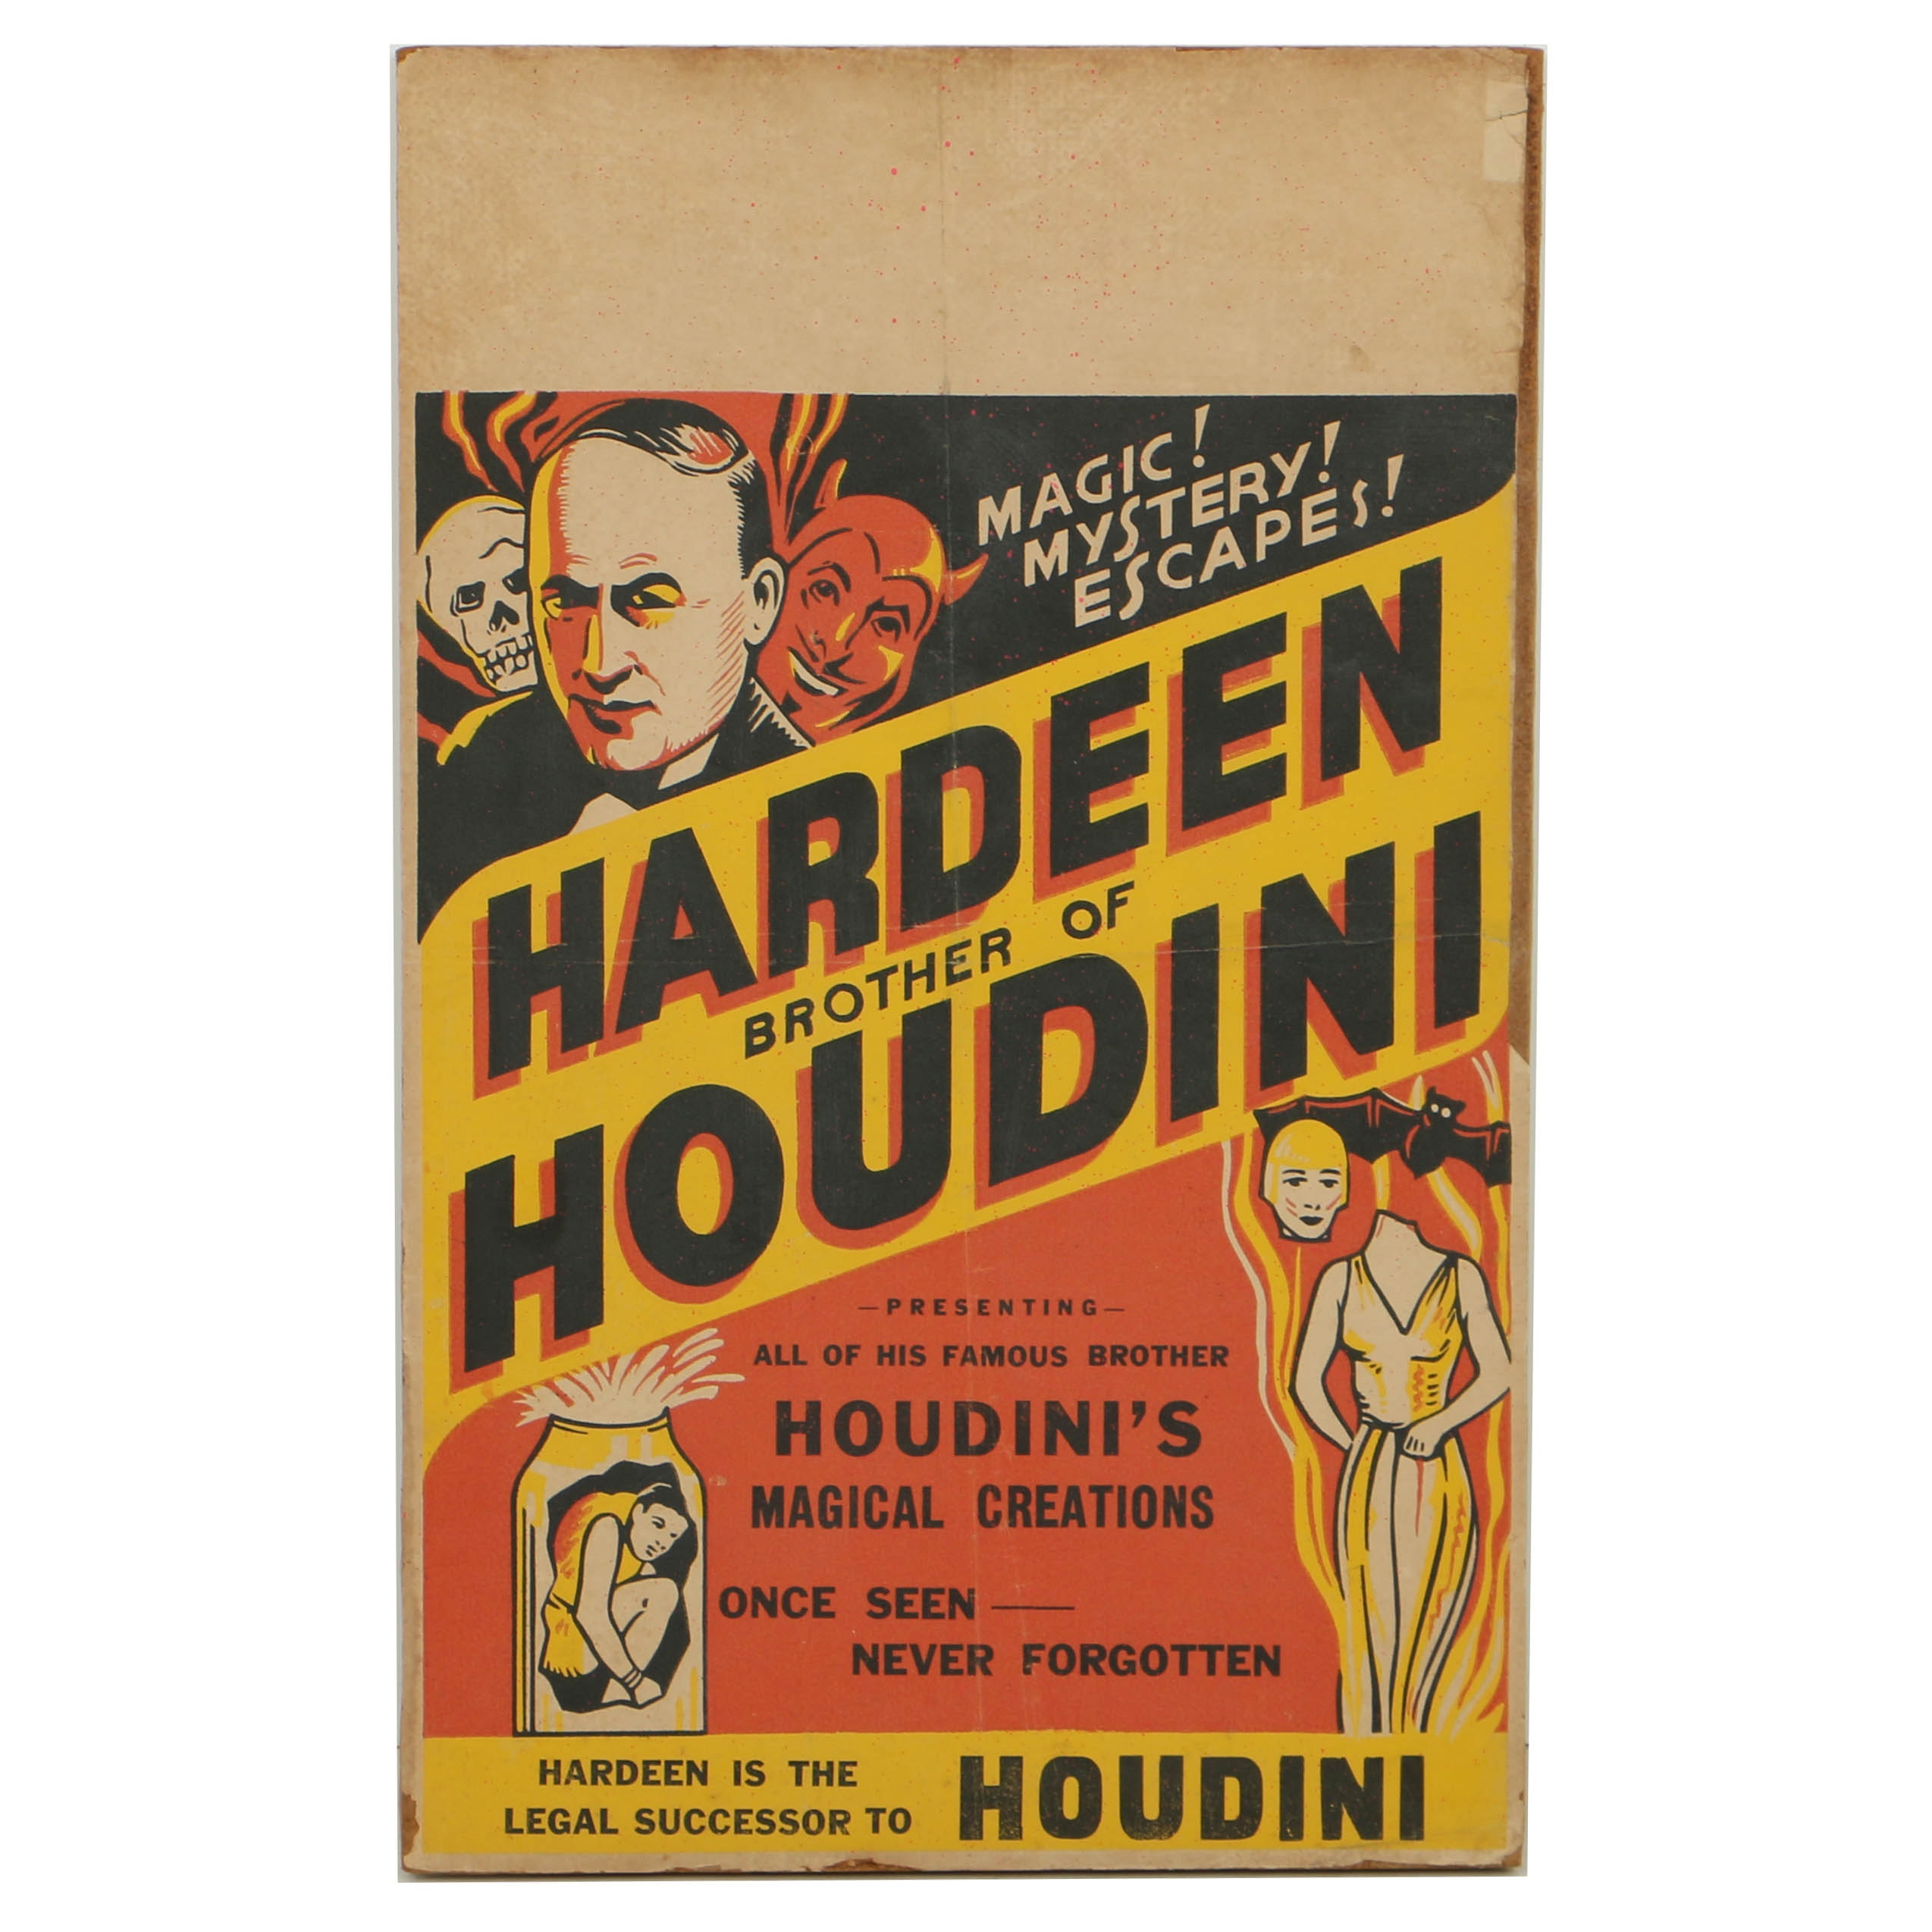 Hardeen Brother of Houdini Magic Poster